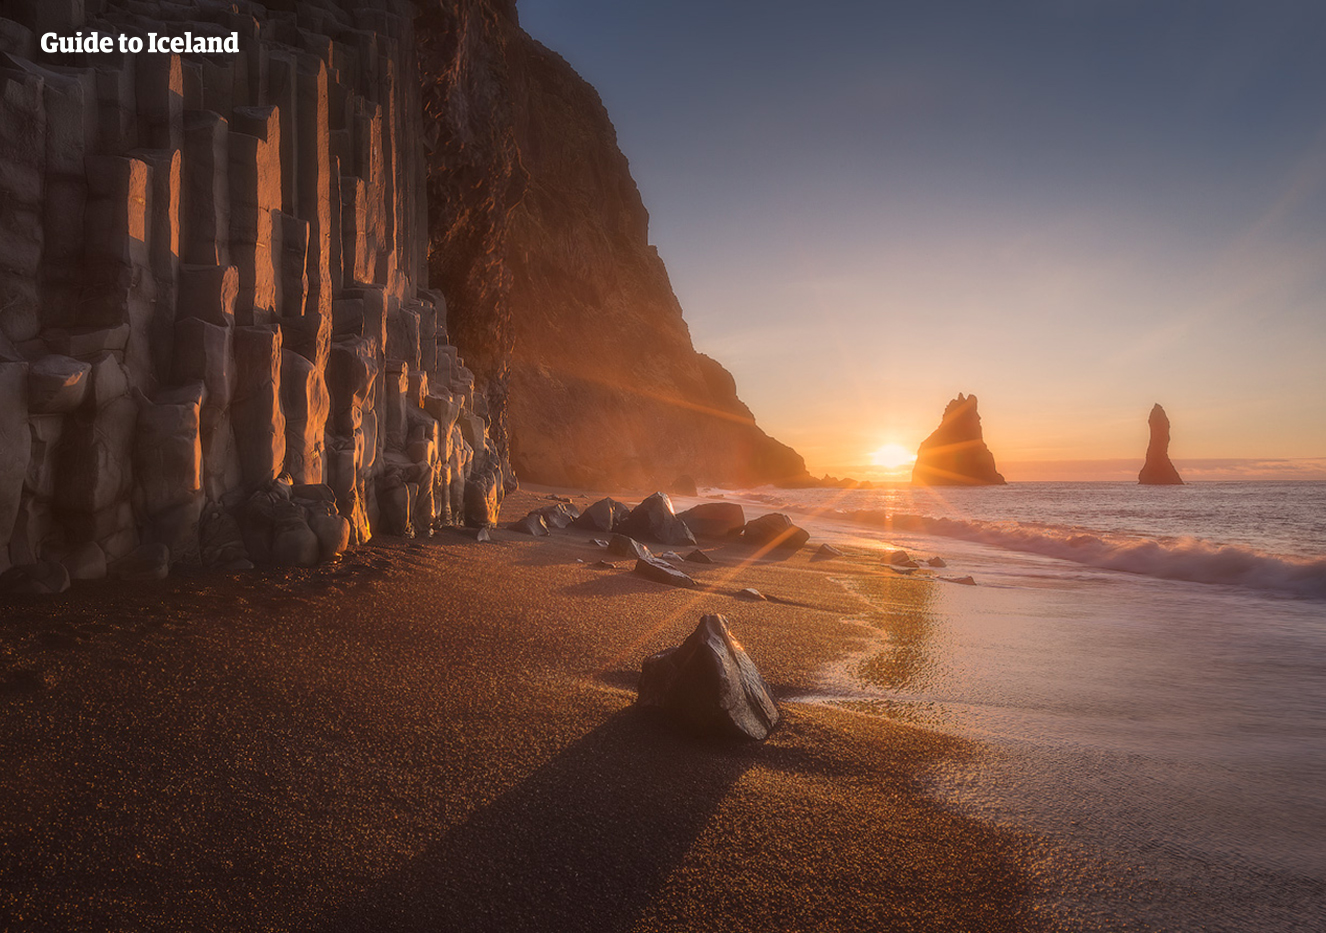 Reynisfjara black sand beach is a must-stop attraction on Iceland's south coast.